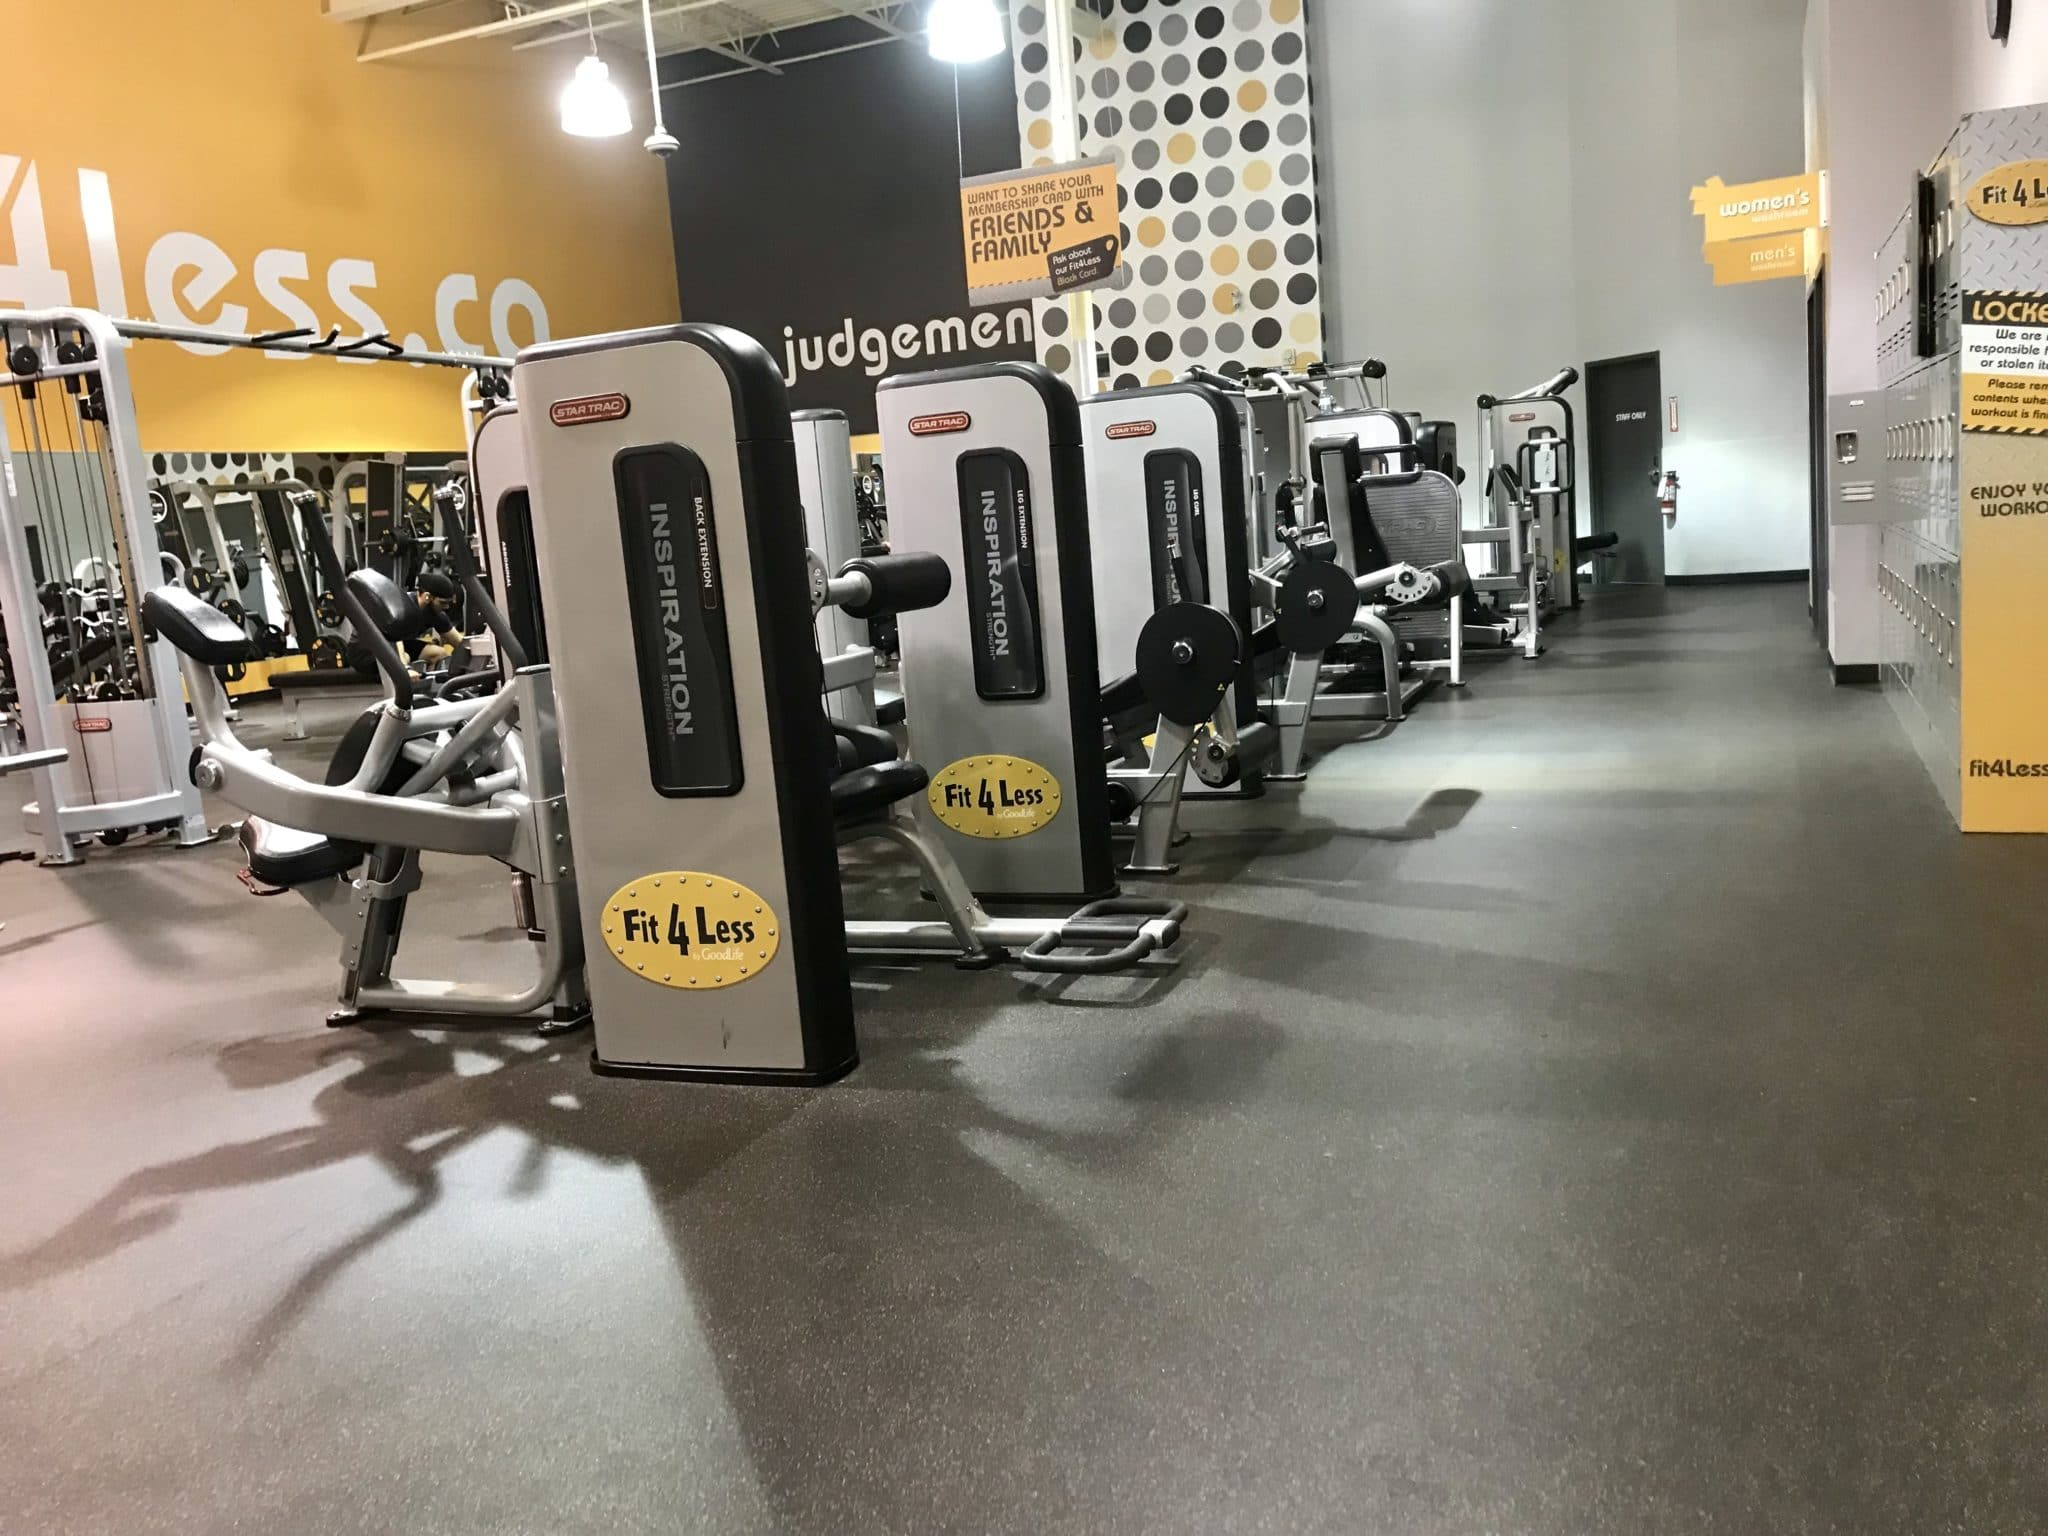 Fit4less Strength Training Machines